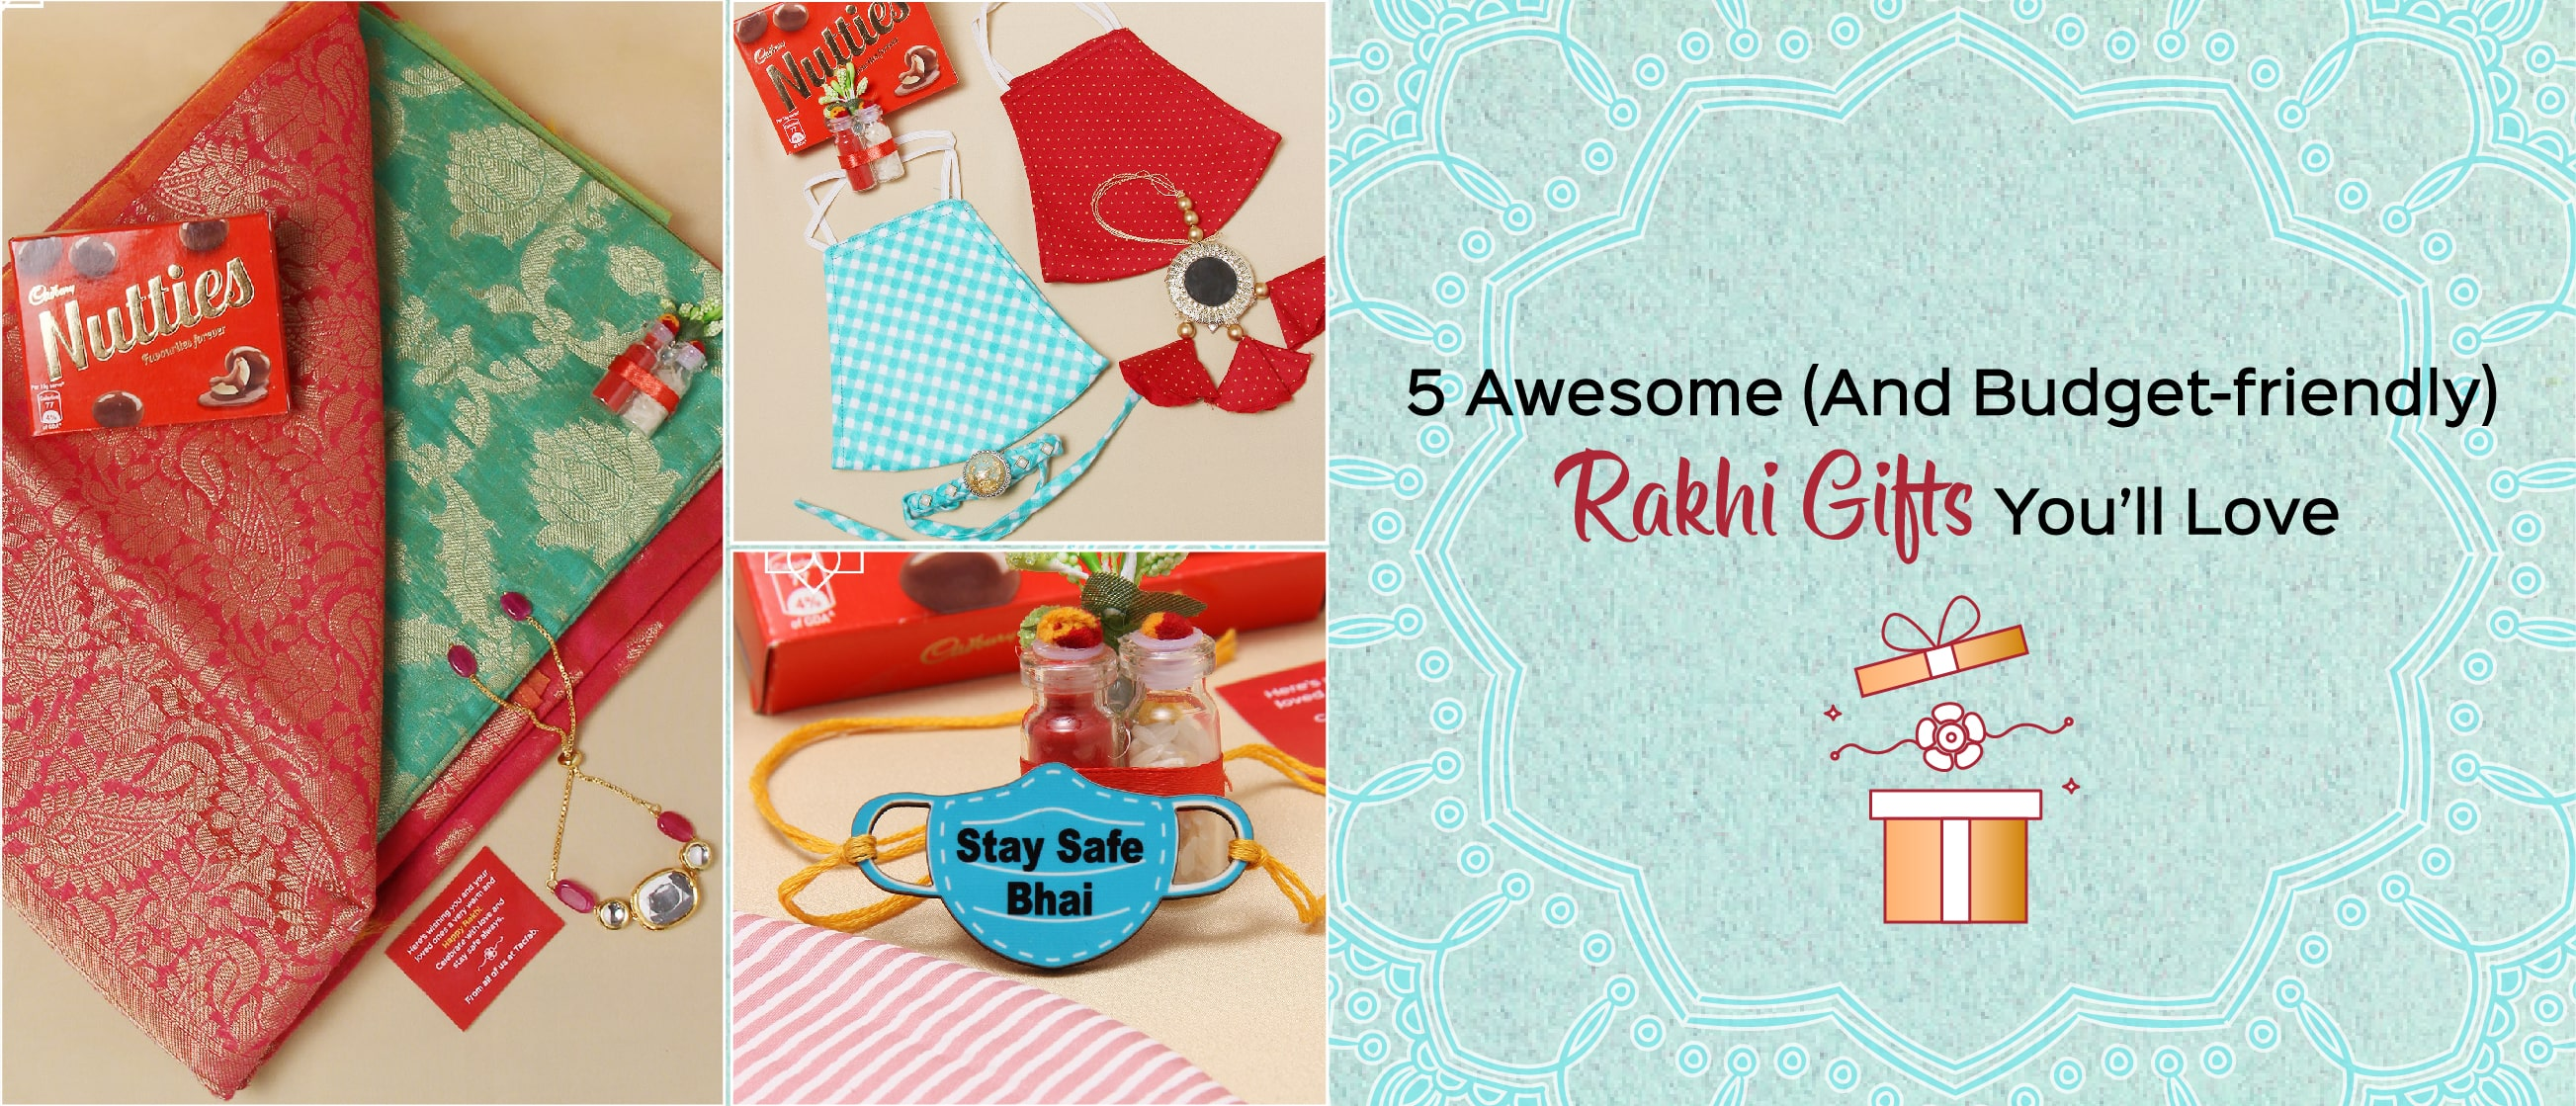 5 Awesome (And Budget-friendly) Rakhi Gifts You'll Love